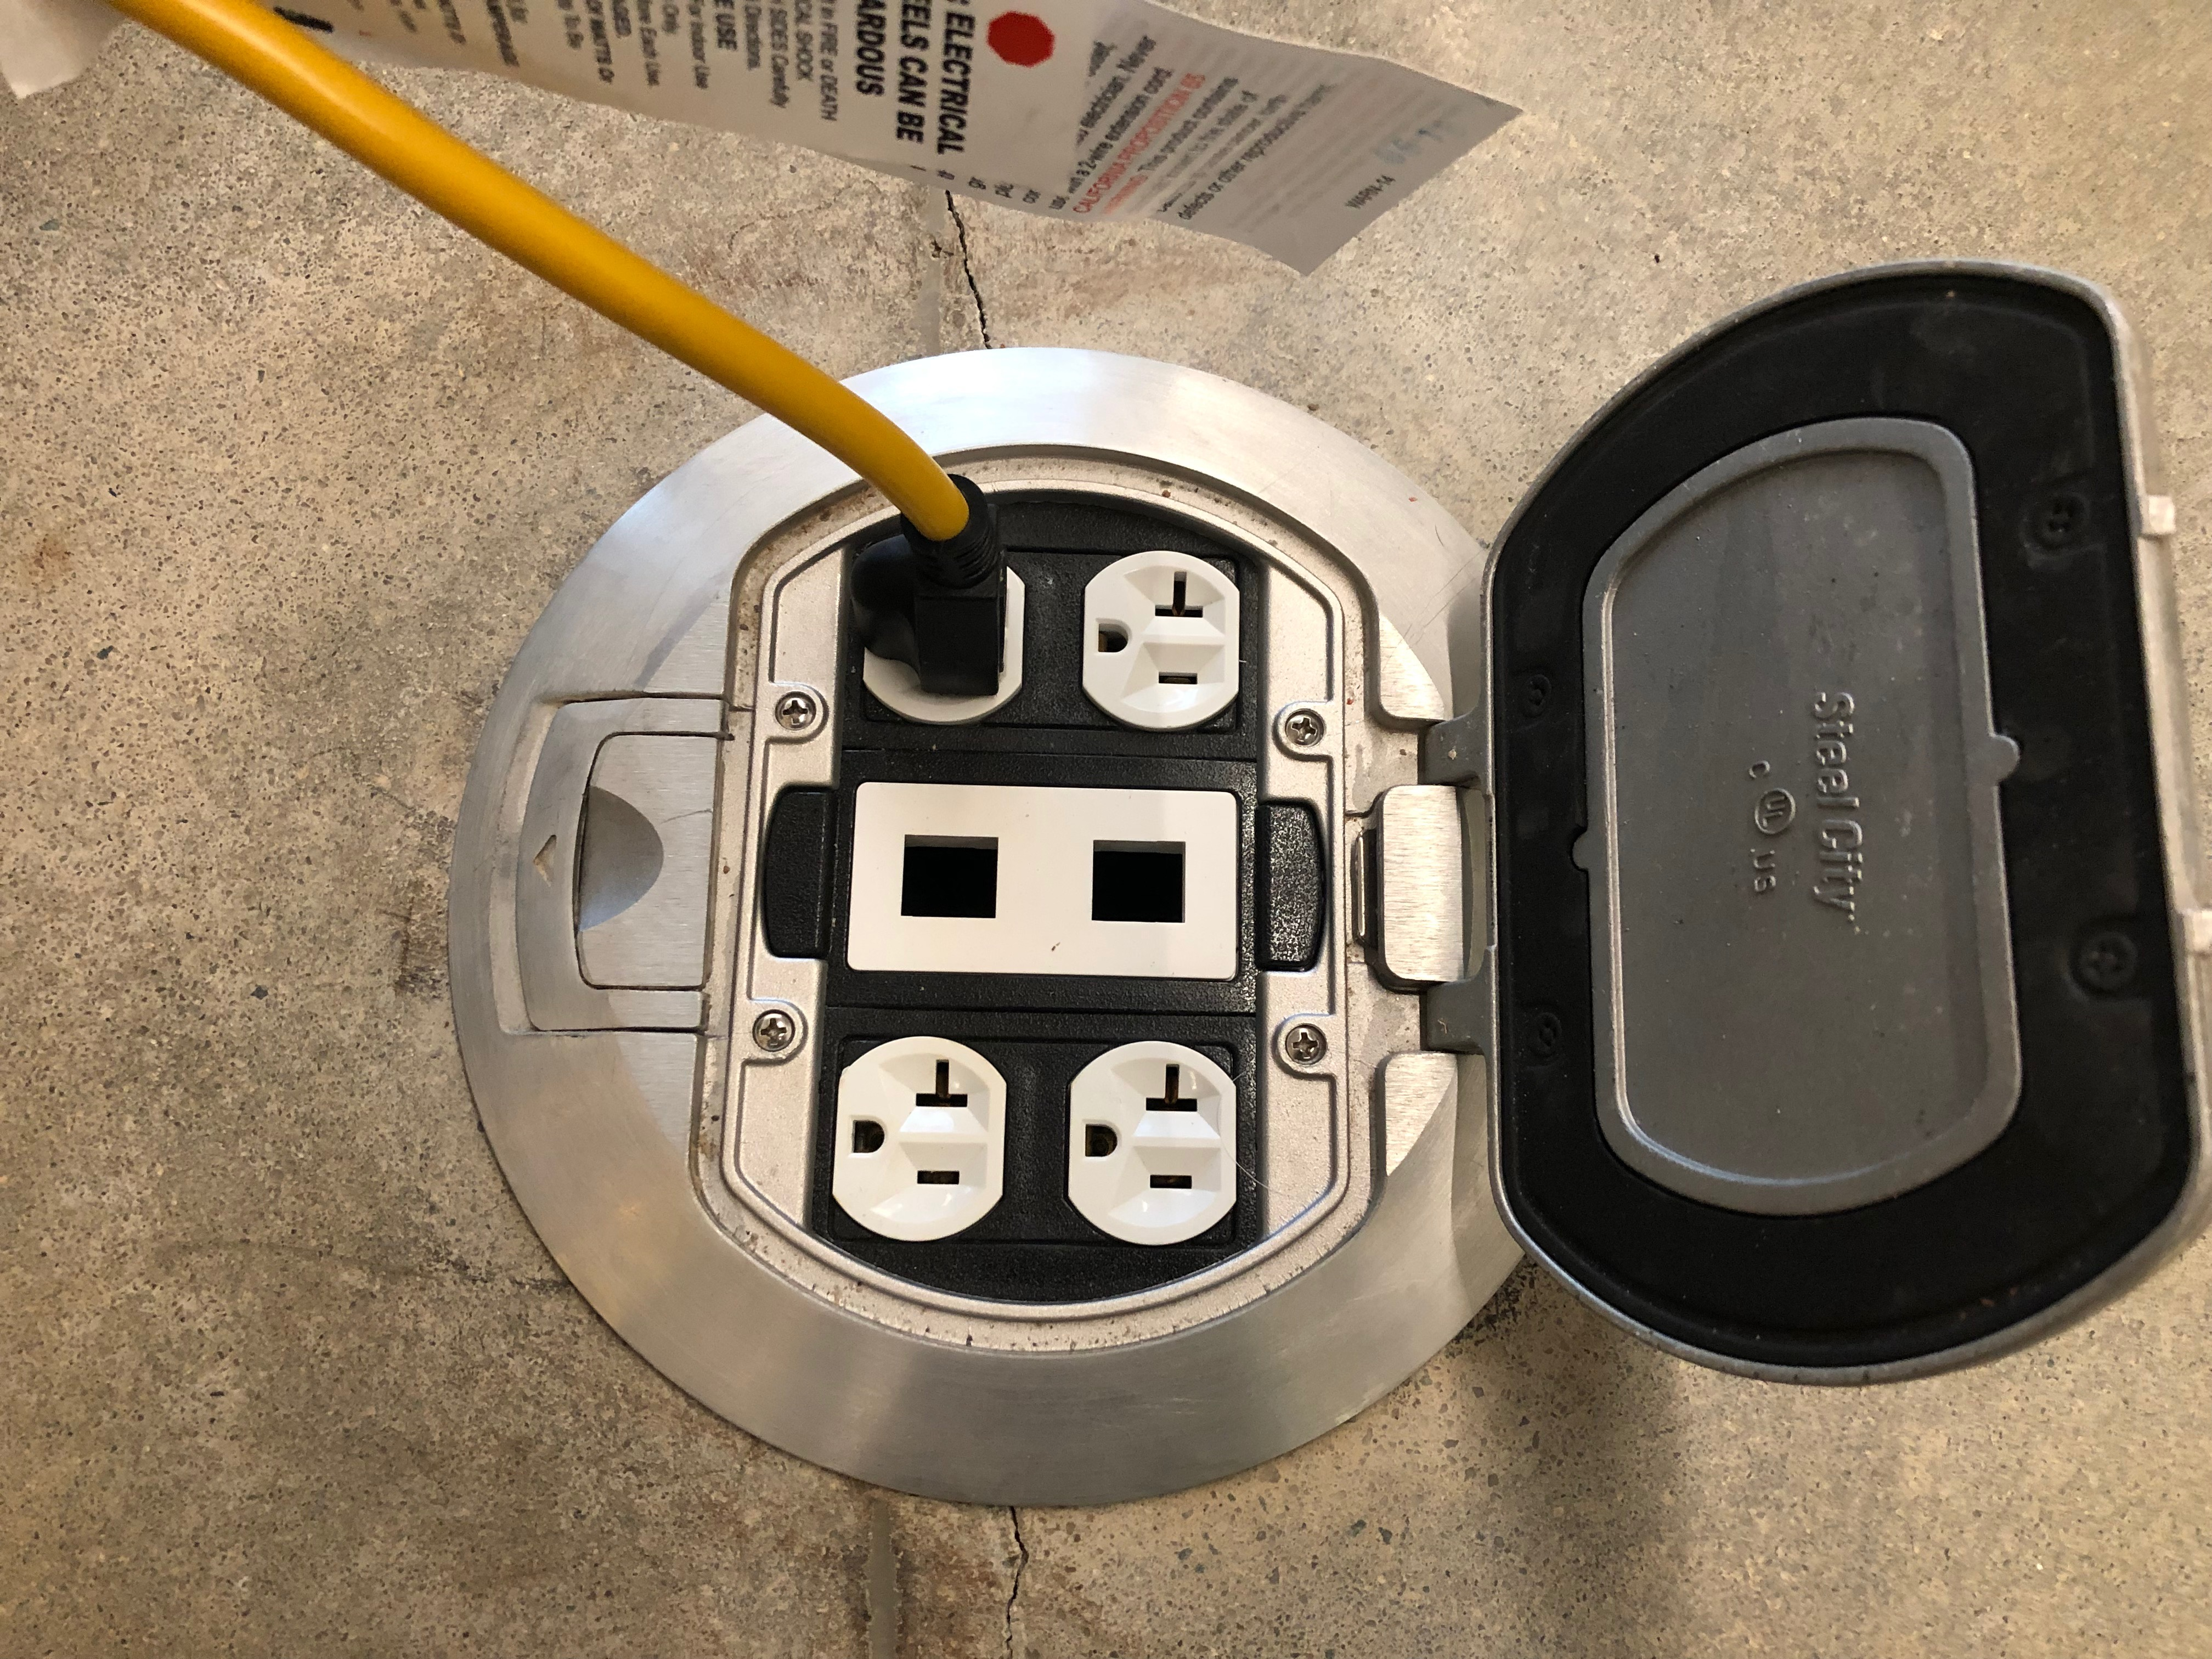 A picture of an extension cord plugged into a power outlet.